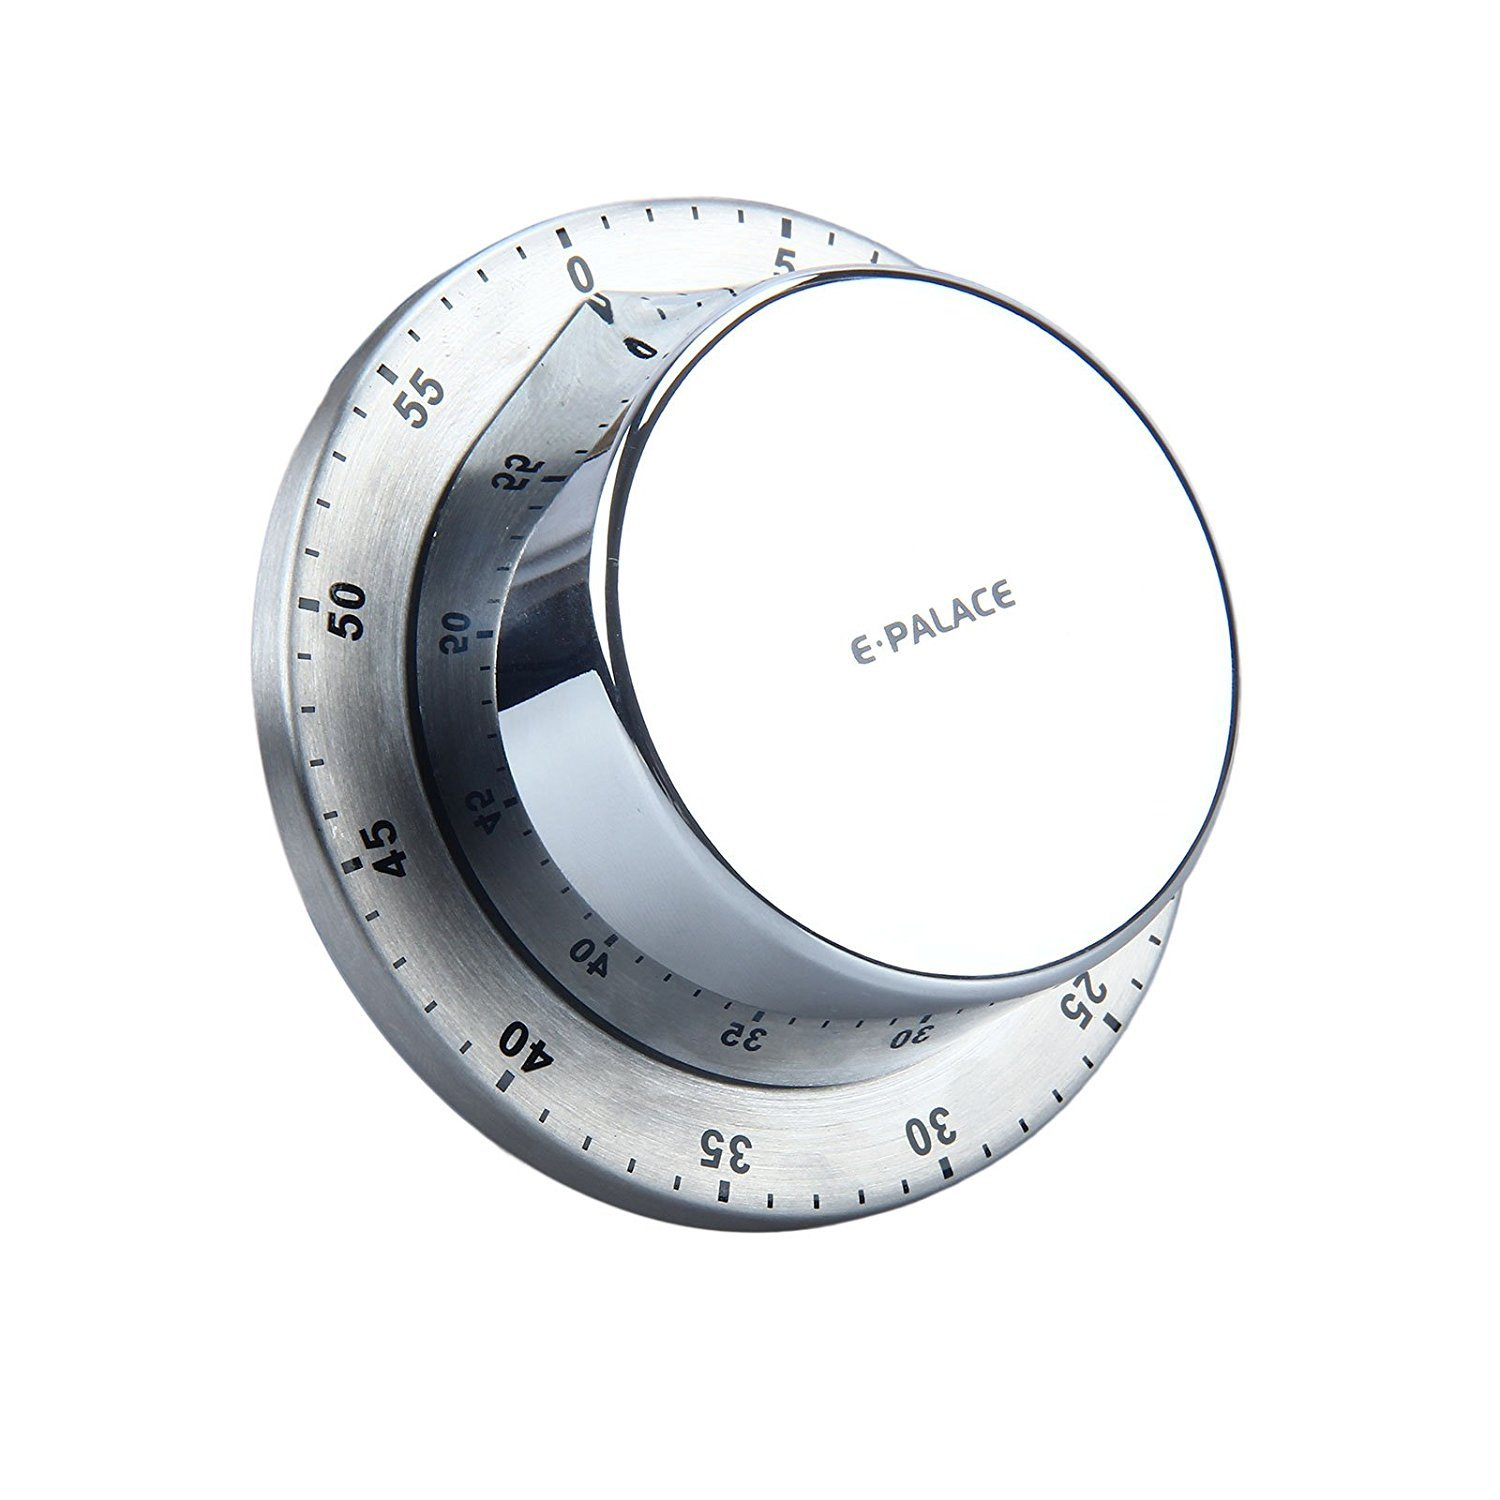 E-Palace Kitchen Timer. Wind up Cooking Timer with Magnetic Base. (Silver) Founder Technology Group CO. LTD